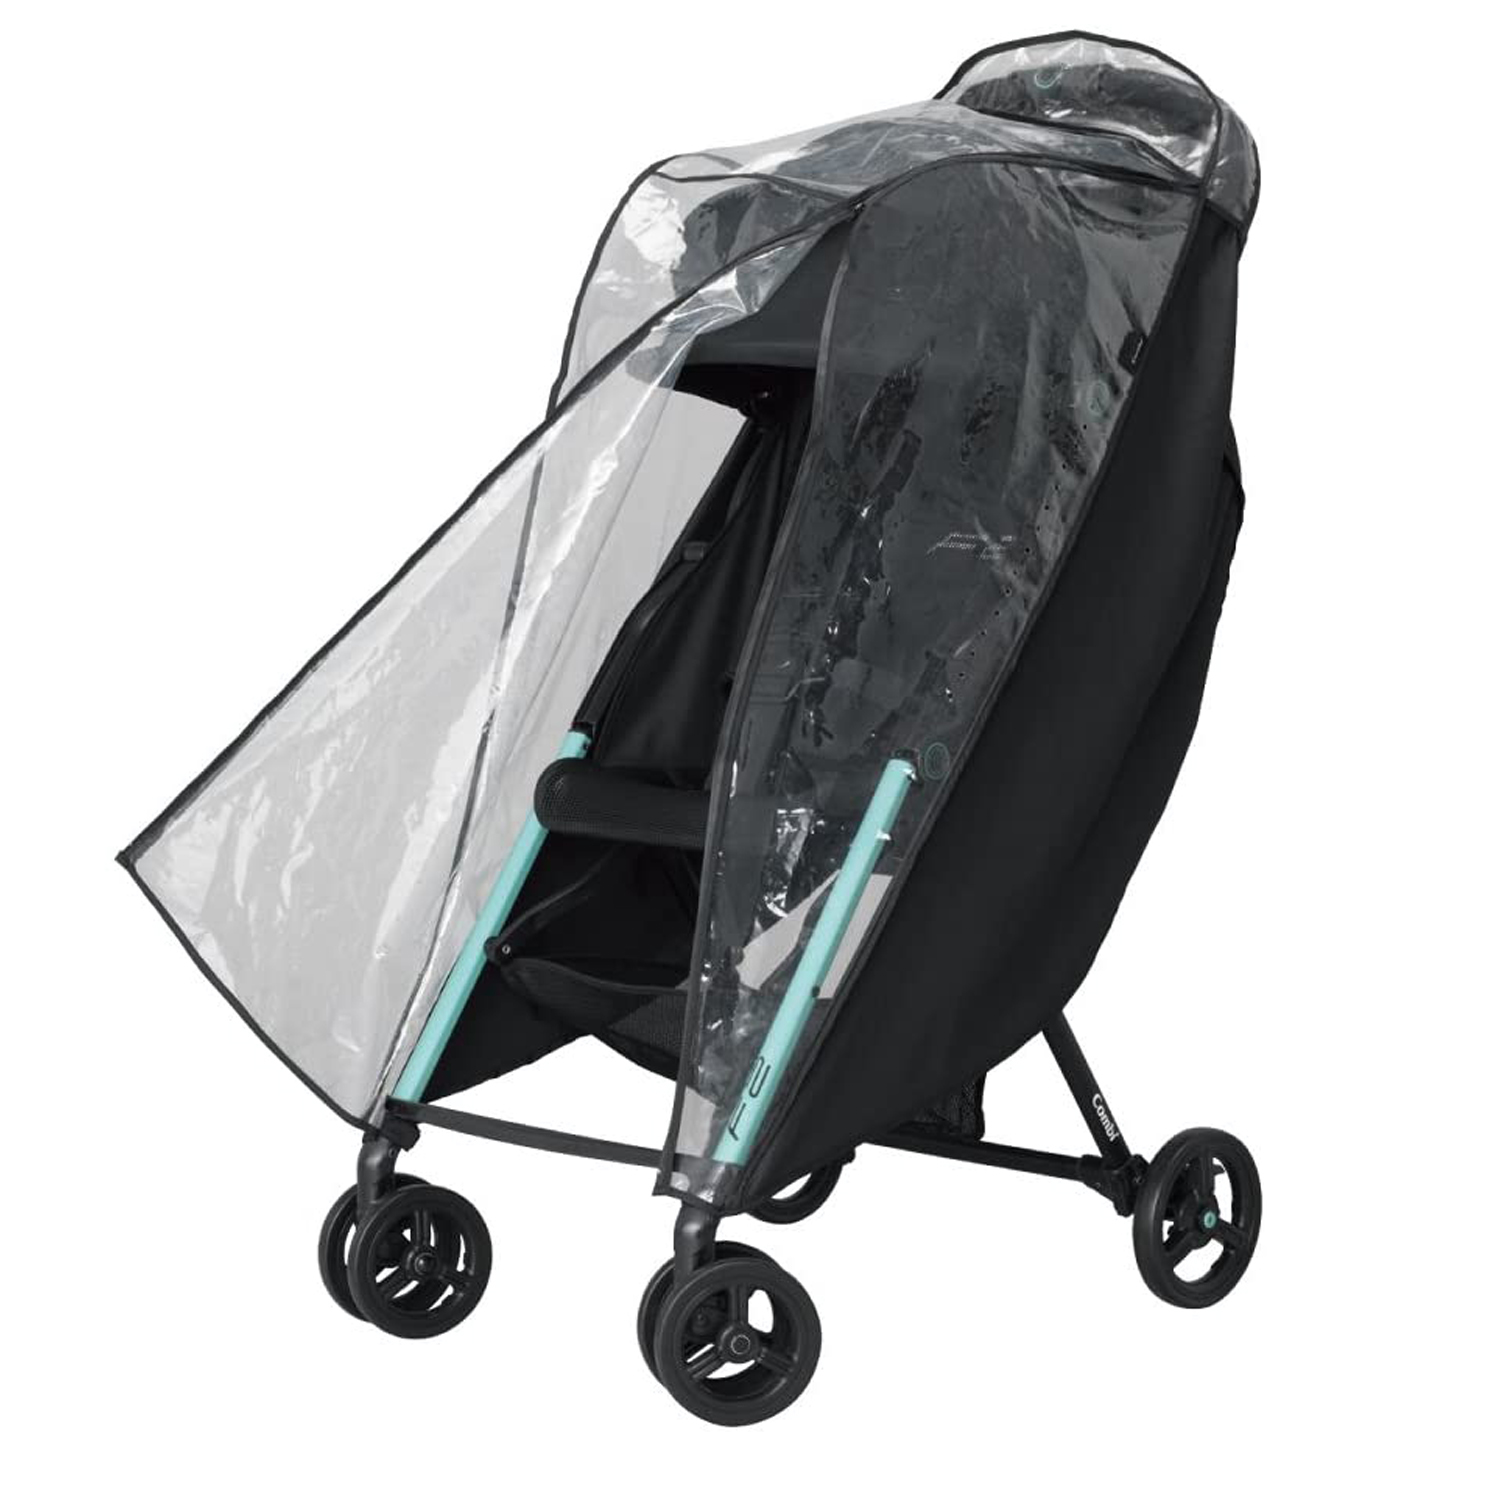 Good Wholesale Vendors Waterproof Baby Stroller Rain Cover - Weather Shield Pushchair Rain Cover | for City Mini 2 (4-Wheel) Single Strollers | Blocks Rain, Snow & Wind – Transtek